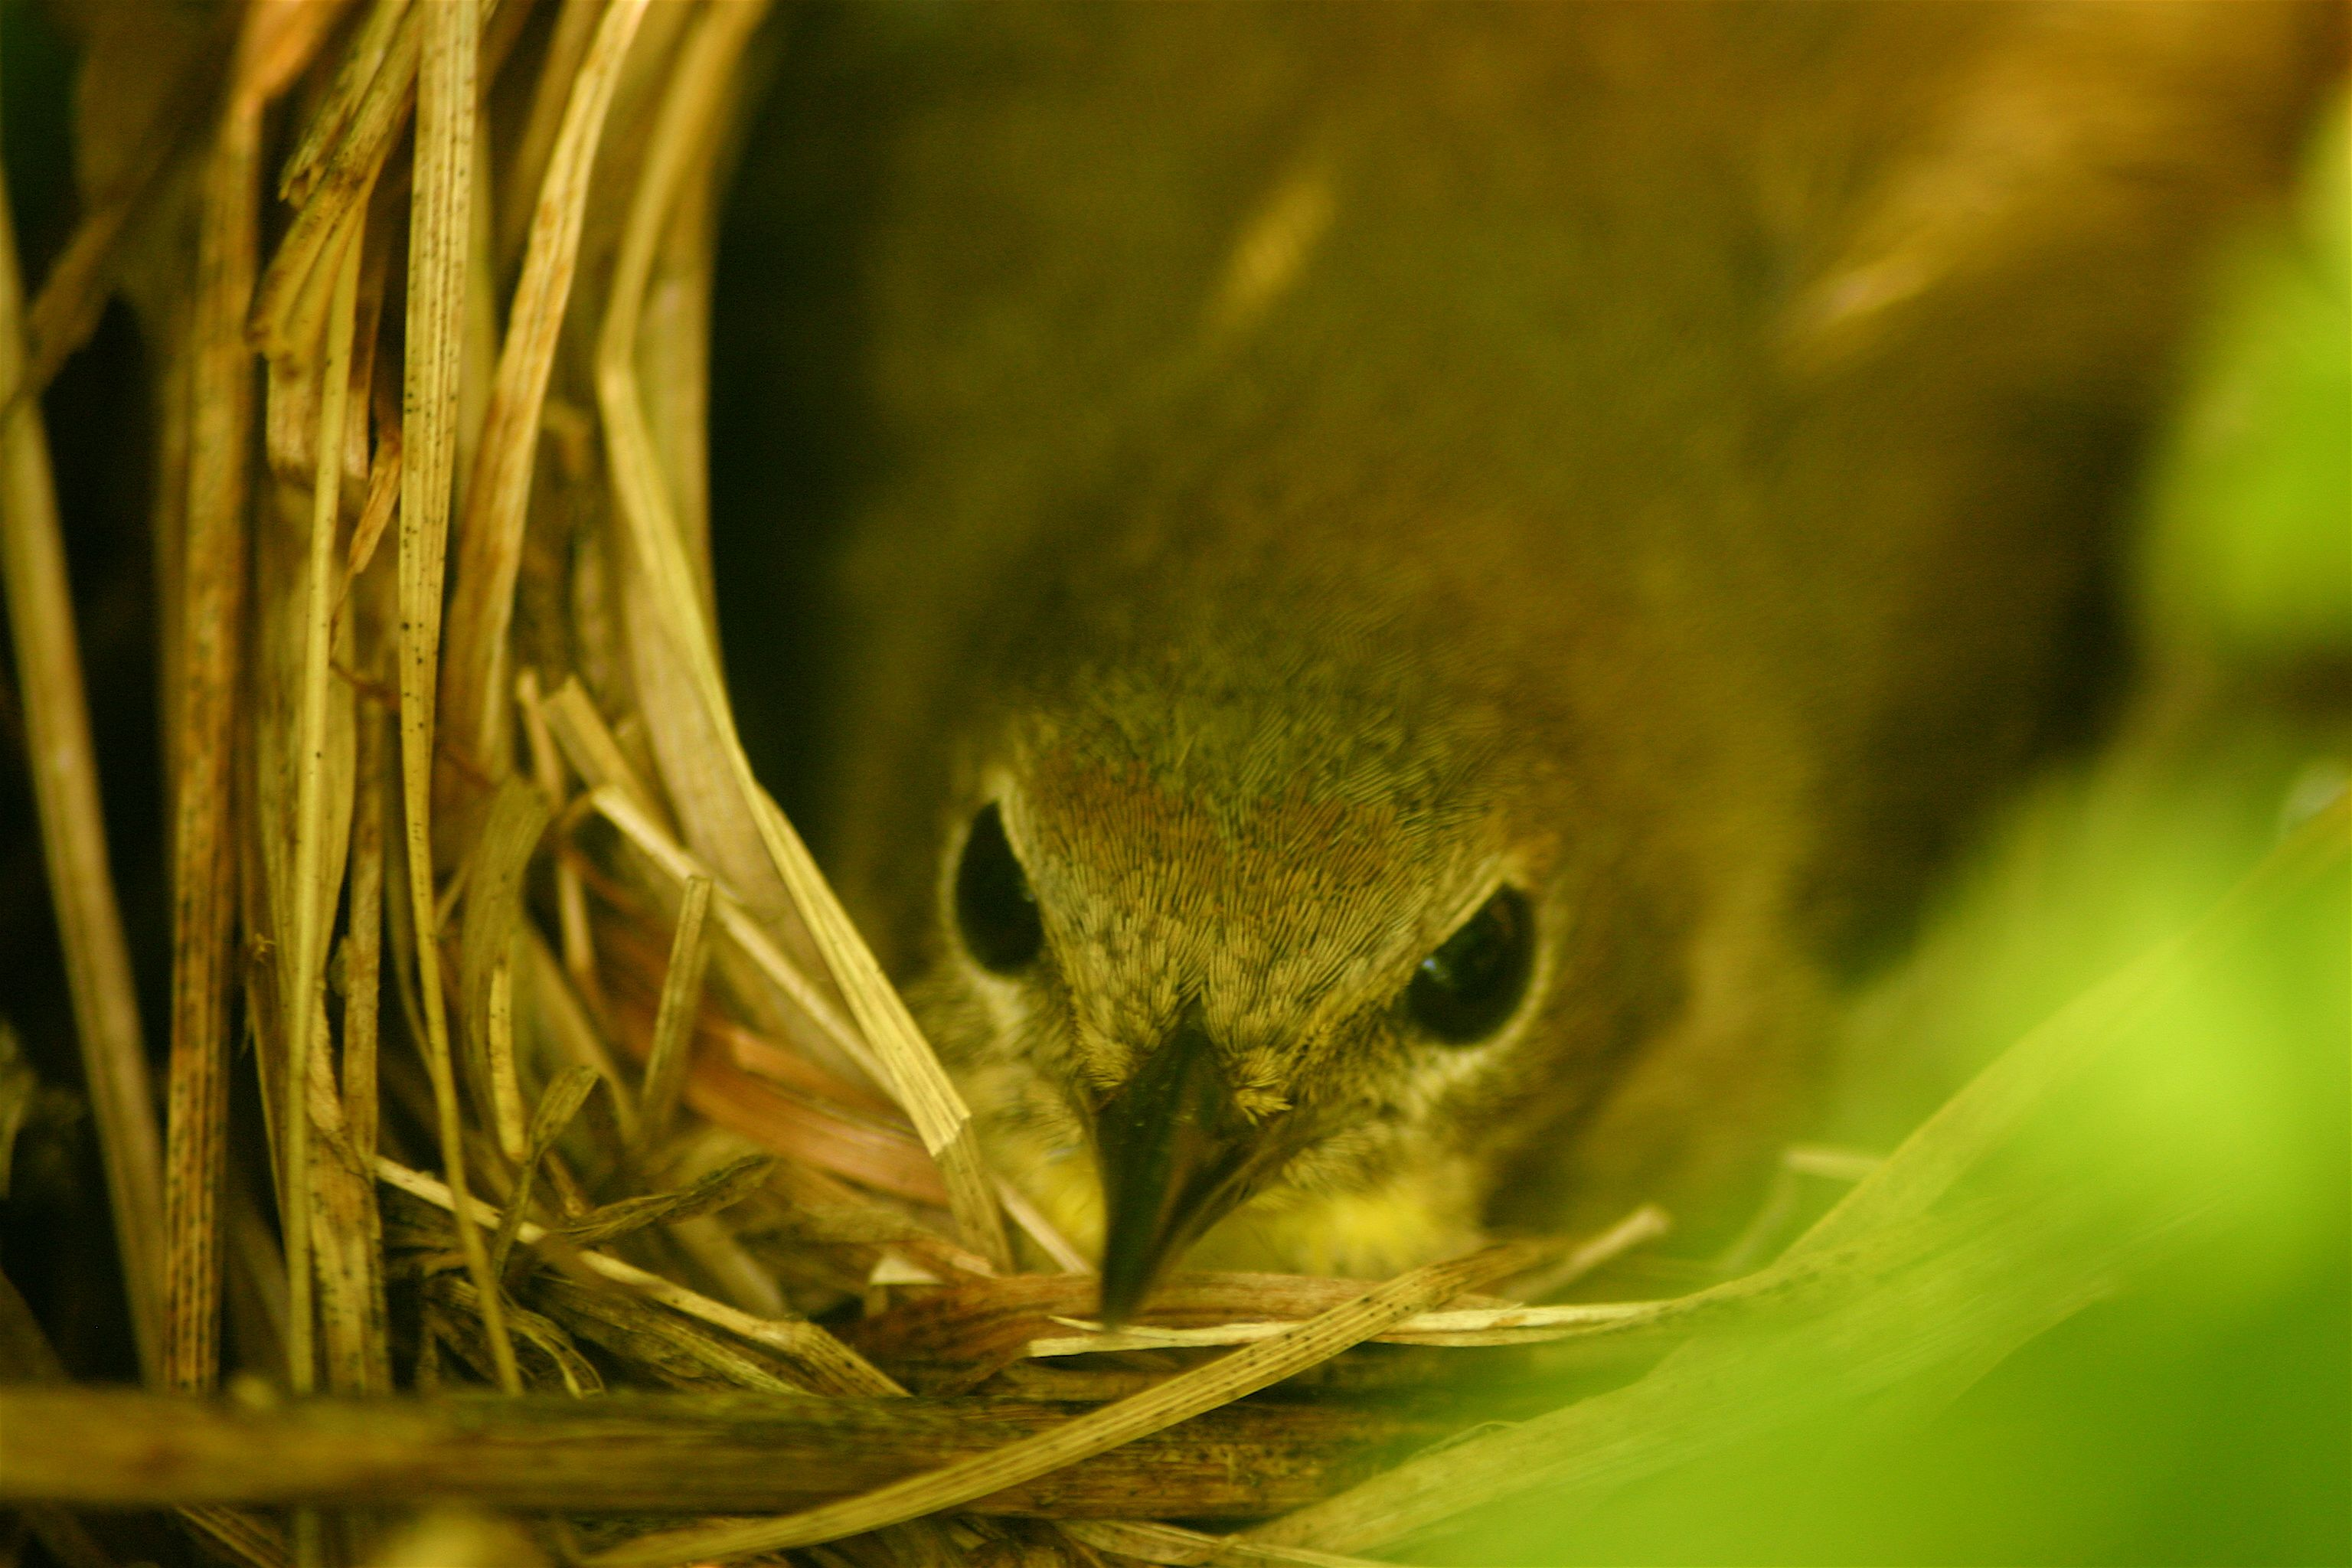 PhD student Conor Taff's research on common yellowthroats